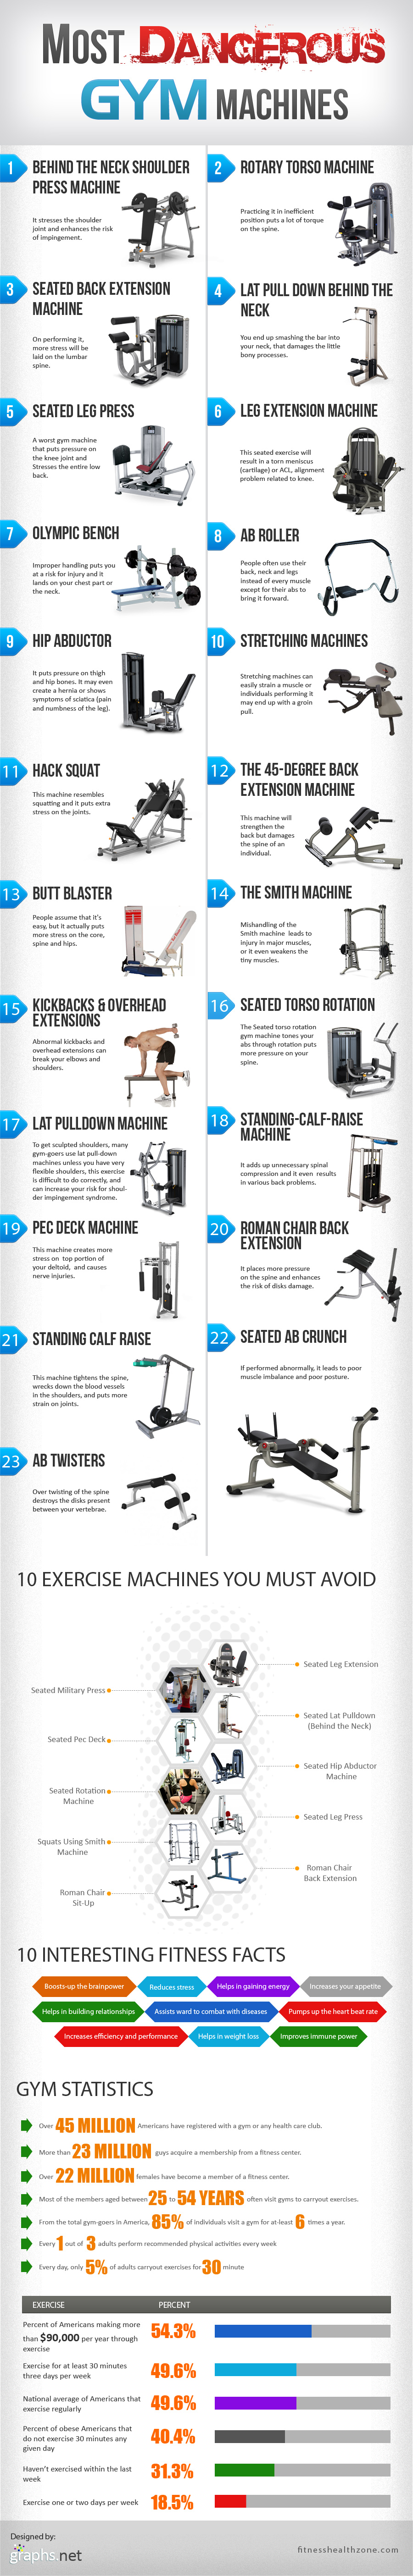 Dangerous gym machines that must be avoided